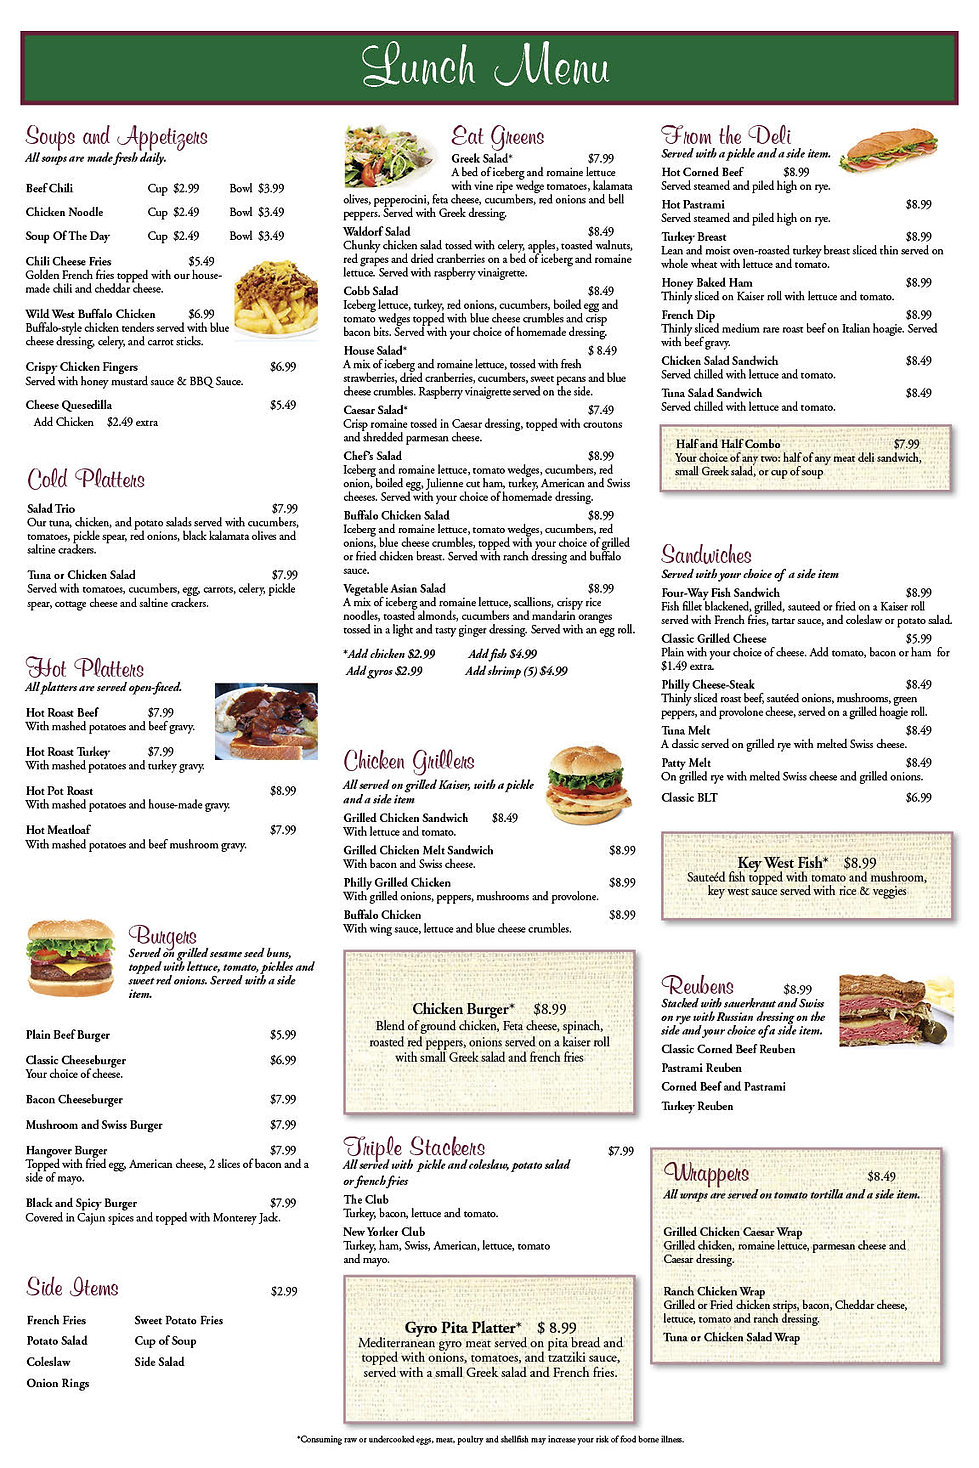 Blueberry's Restaurant Lunch Menu.jpg